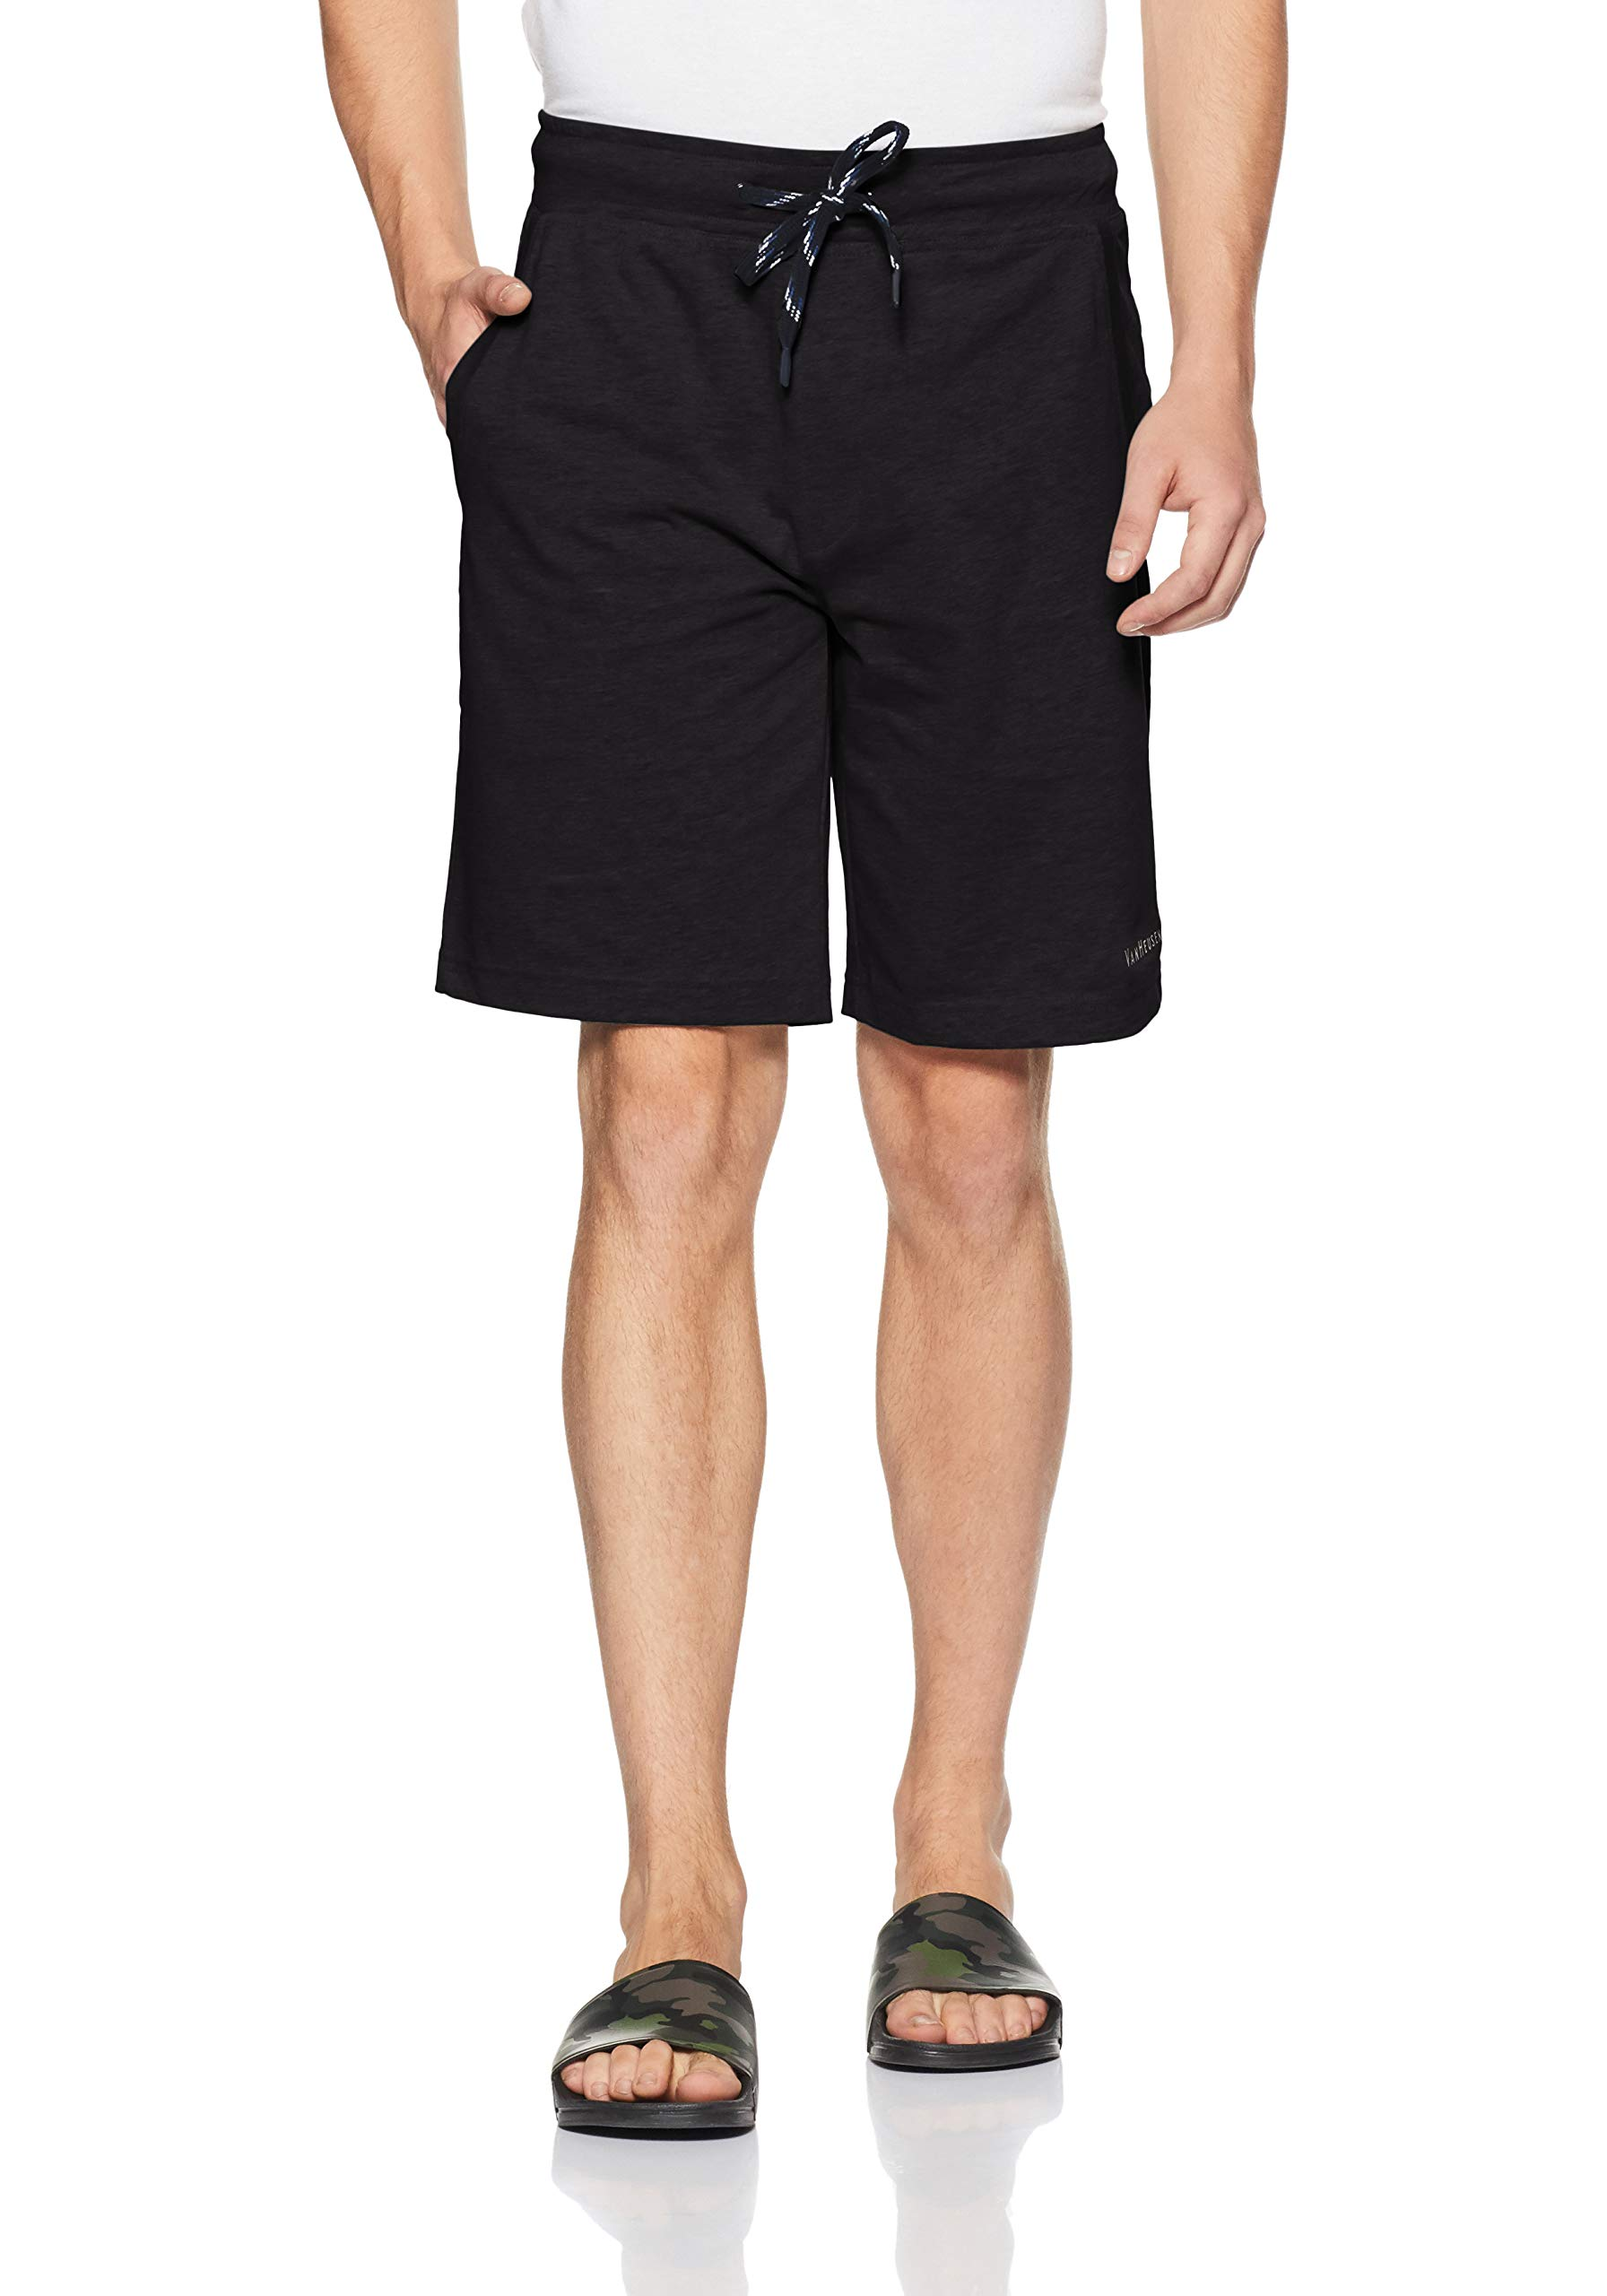 Van Heusen Athleisure Men's Cotton Rich Lounge Shorts(Colors & Print May Vary) product image